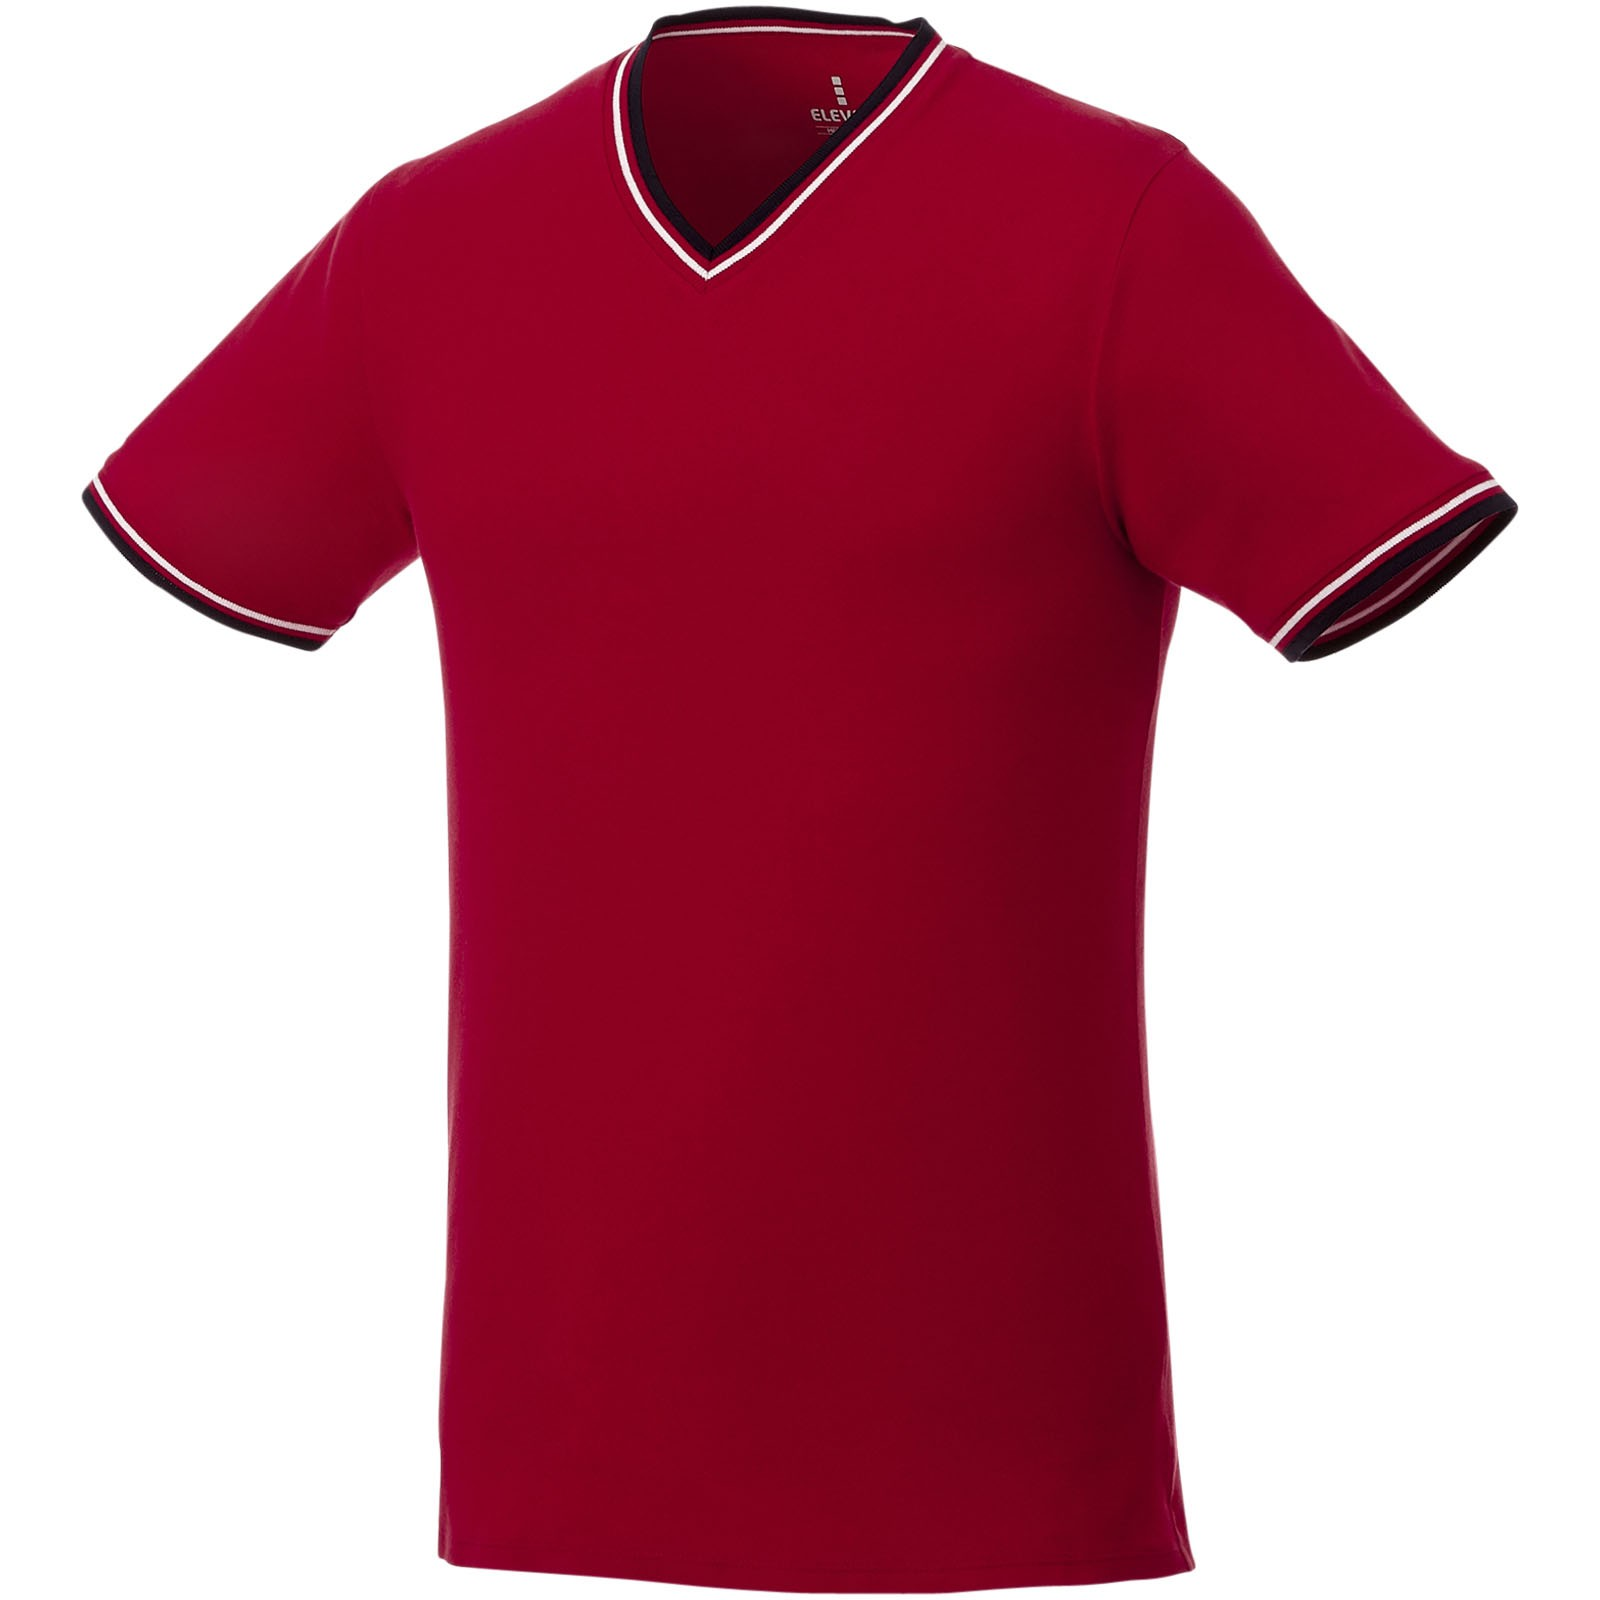 Elbert short sleeve men's pique t-shirt - Red / Navy / White / S